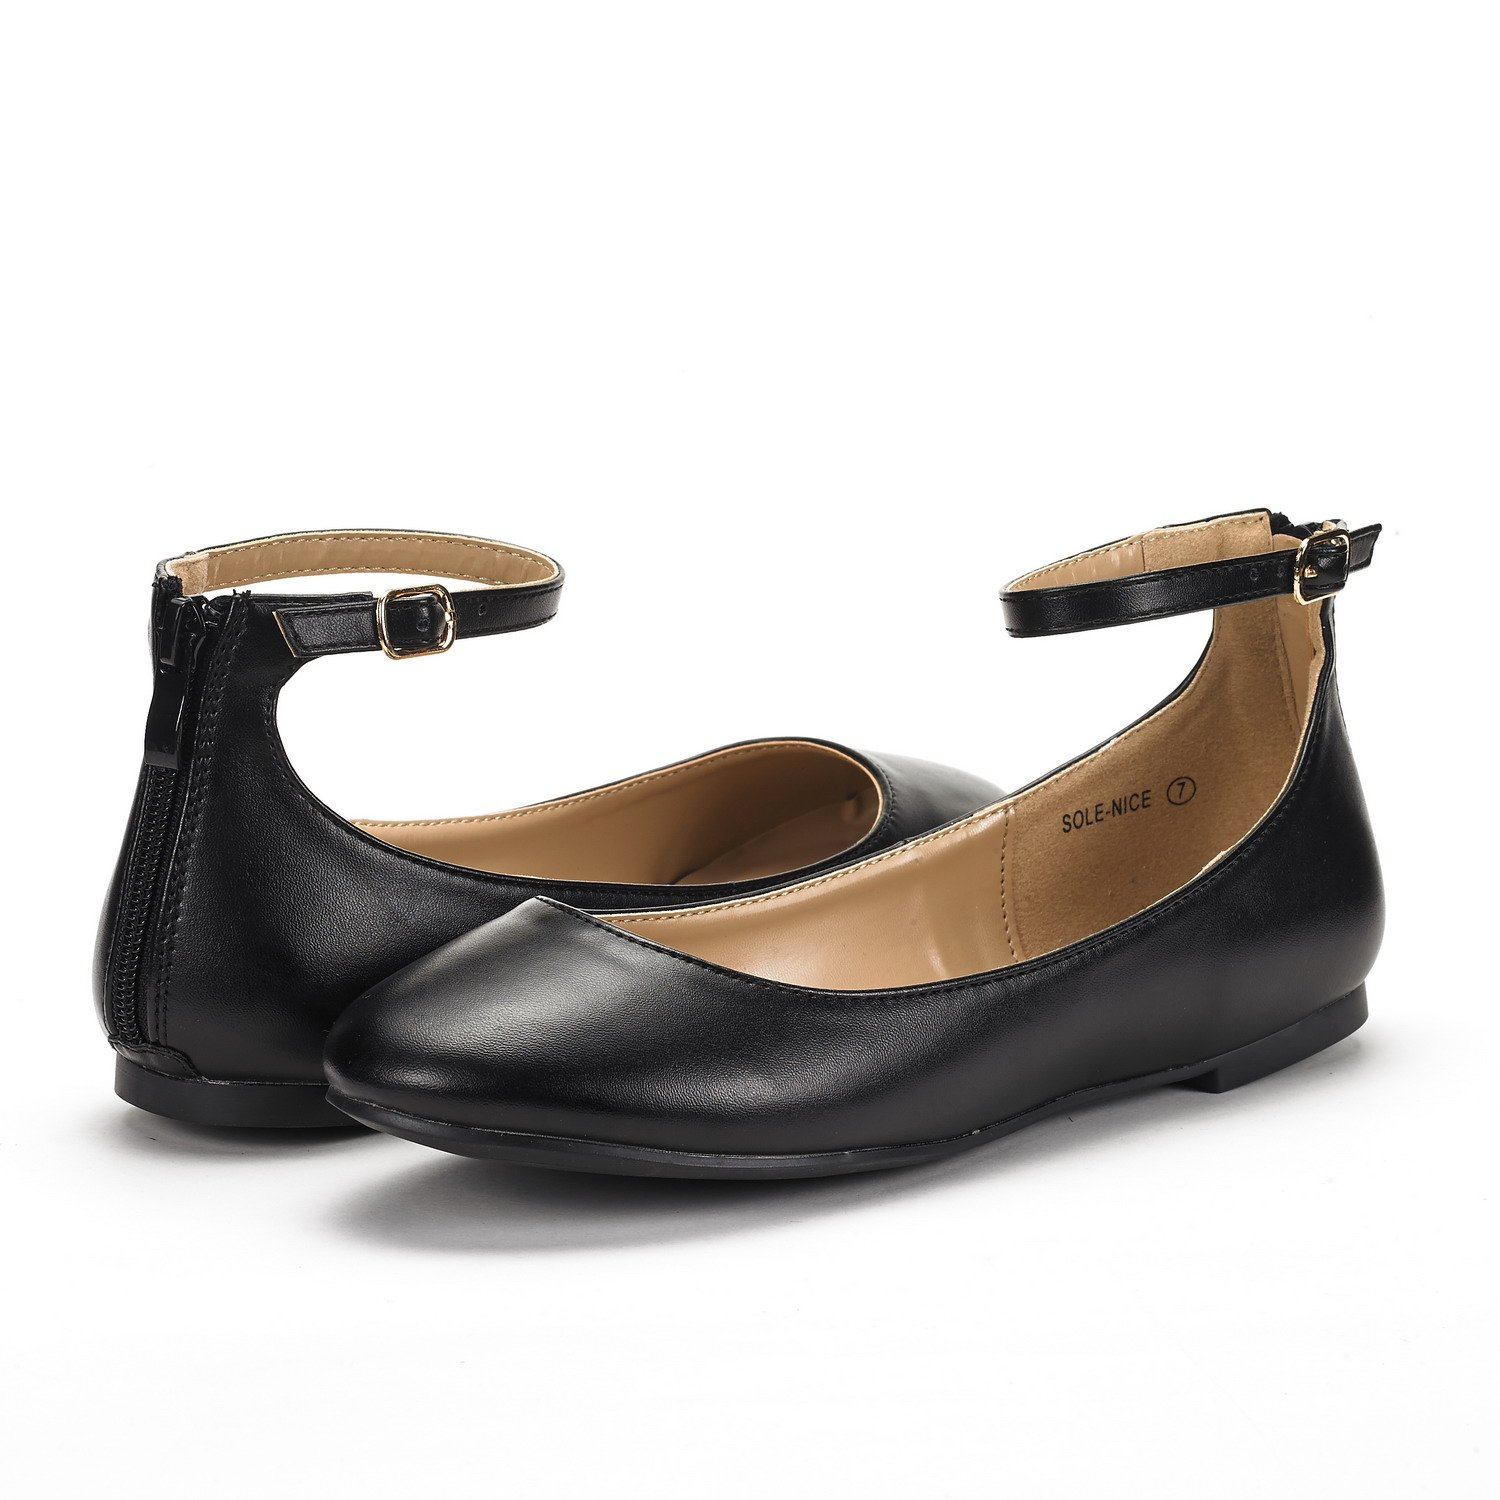 5f208db10 Amazon.com | DREAM PAIRS Women's Sole-Nice Ankle Strap Walking Flats Shoes  | Flats